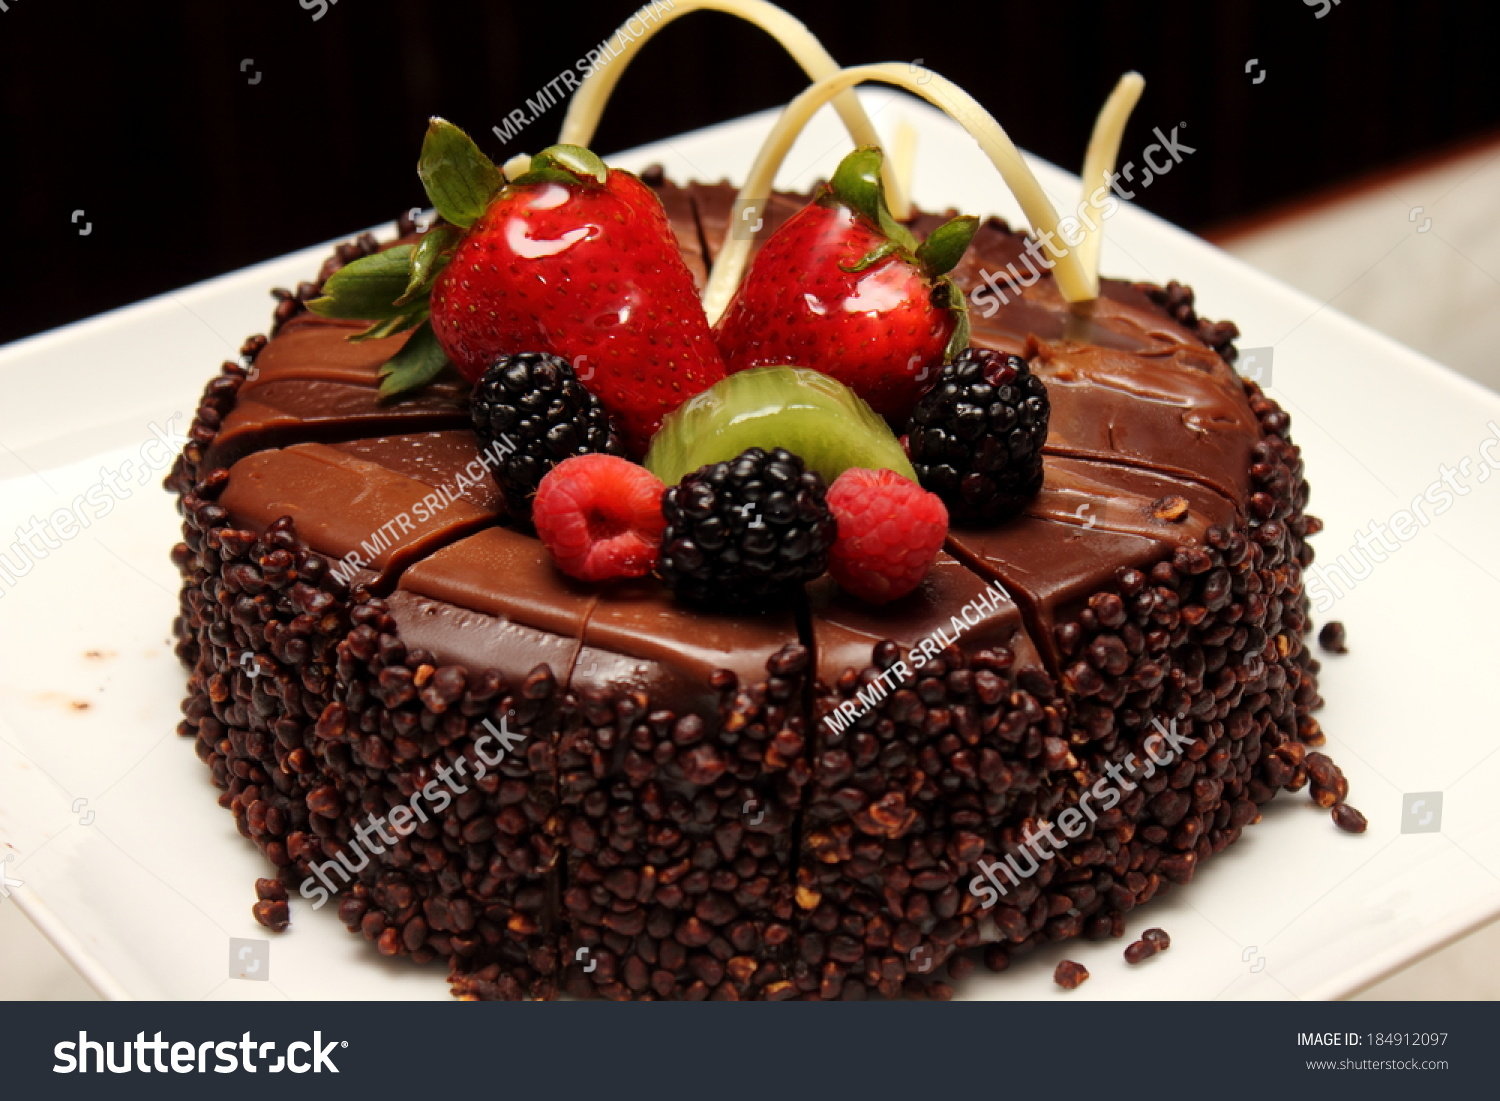 Fruit Chocolate Cake Images : Chocolate Fruit Cake Stock Photo 184912097 : Shutterstock